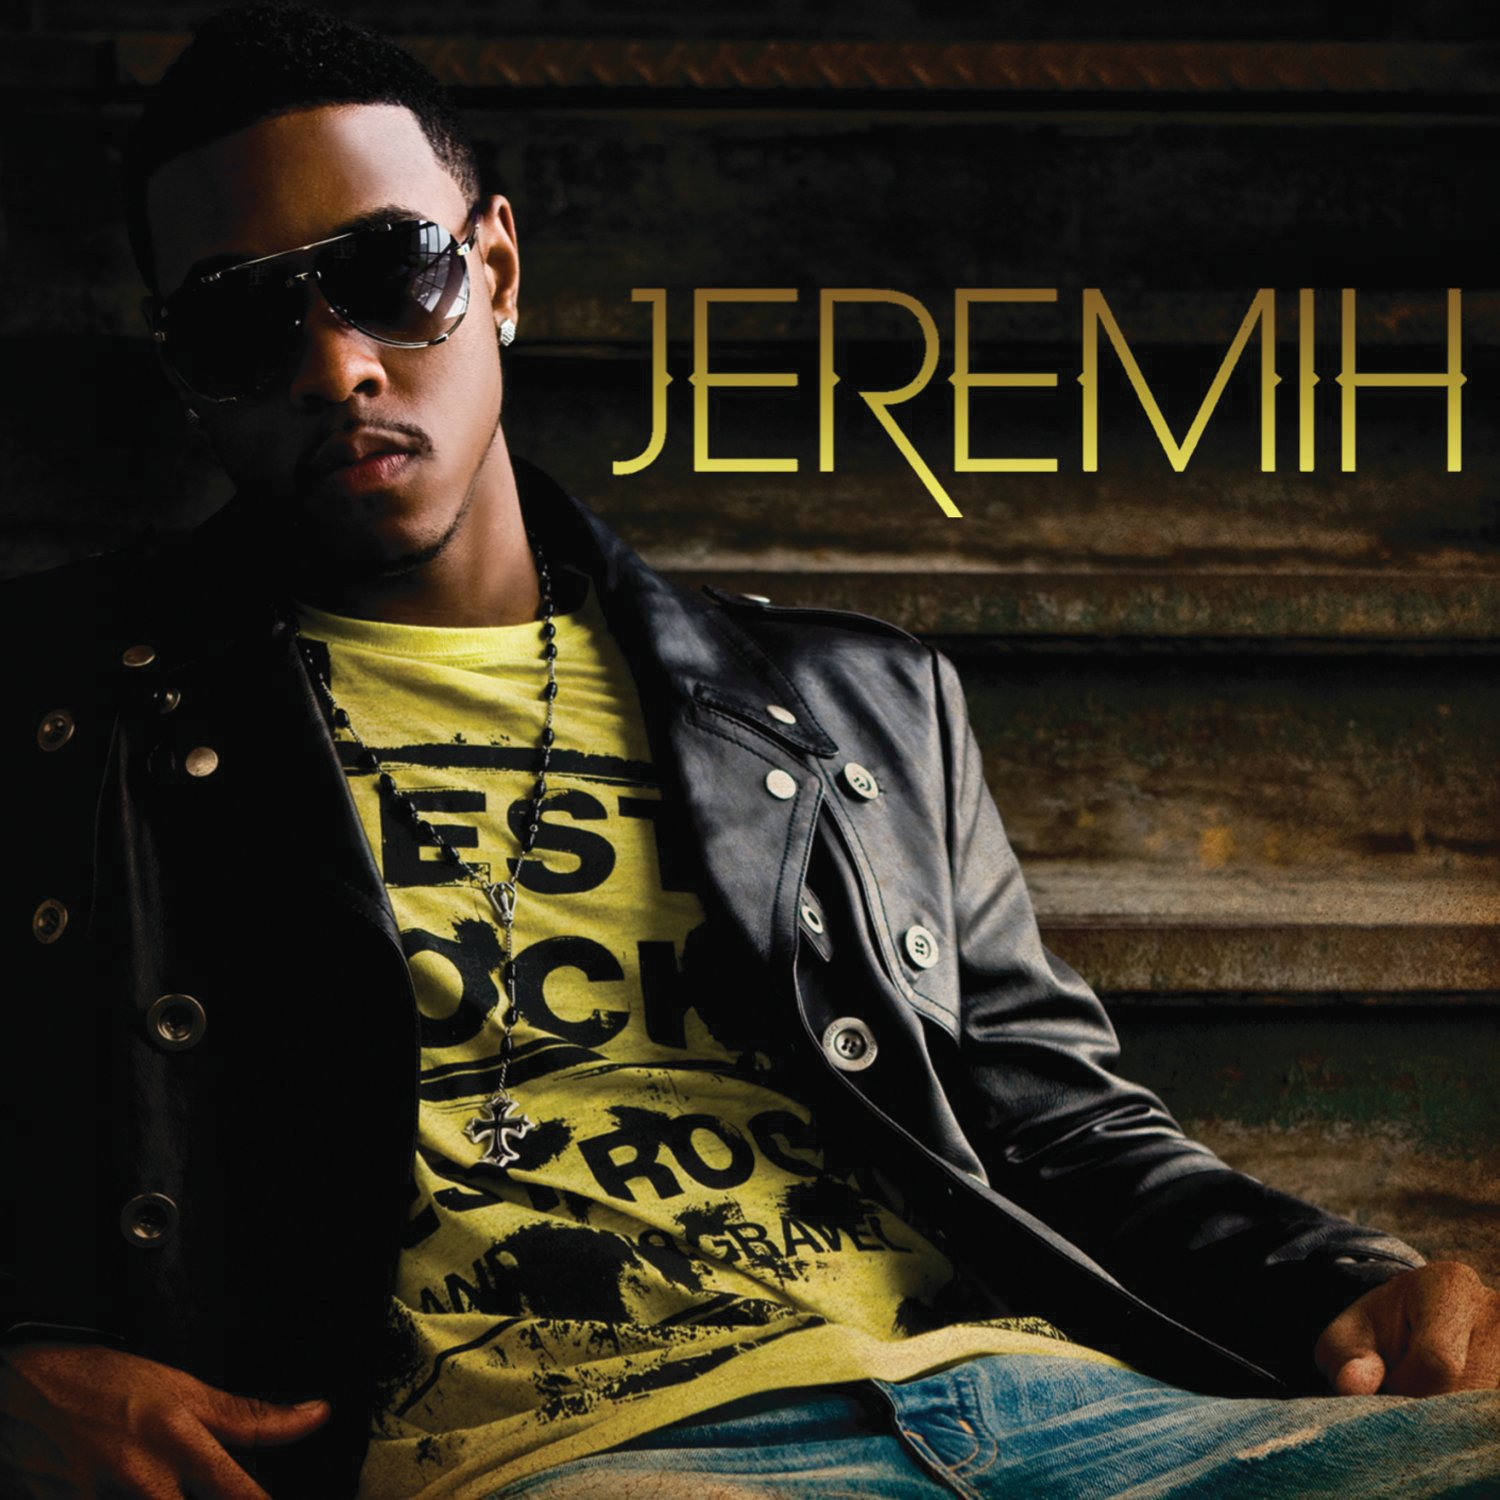 Jeremiah Birthday Sex Album 17